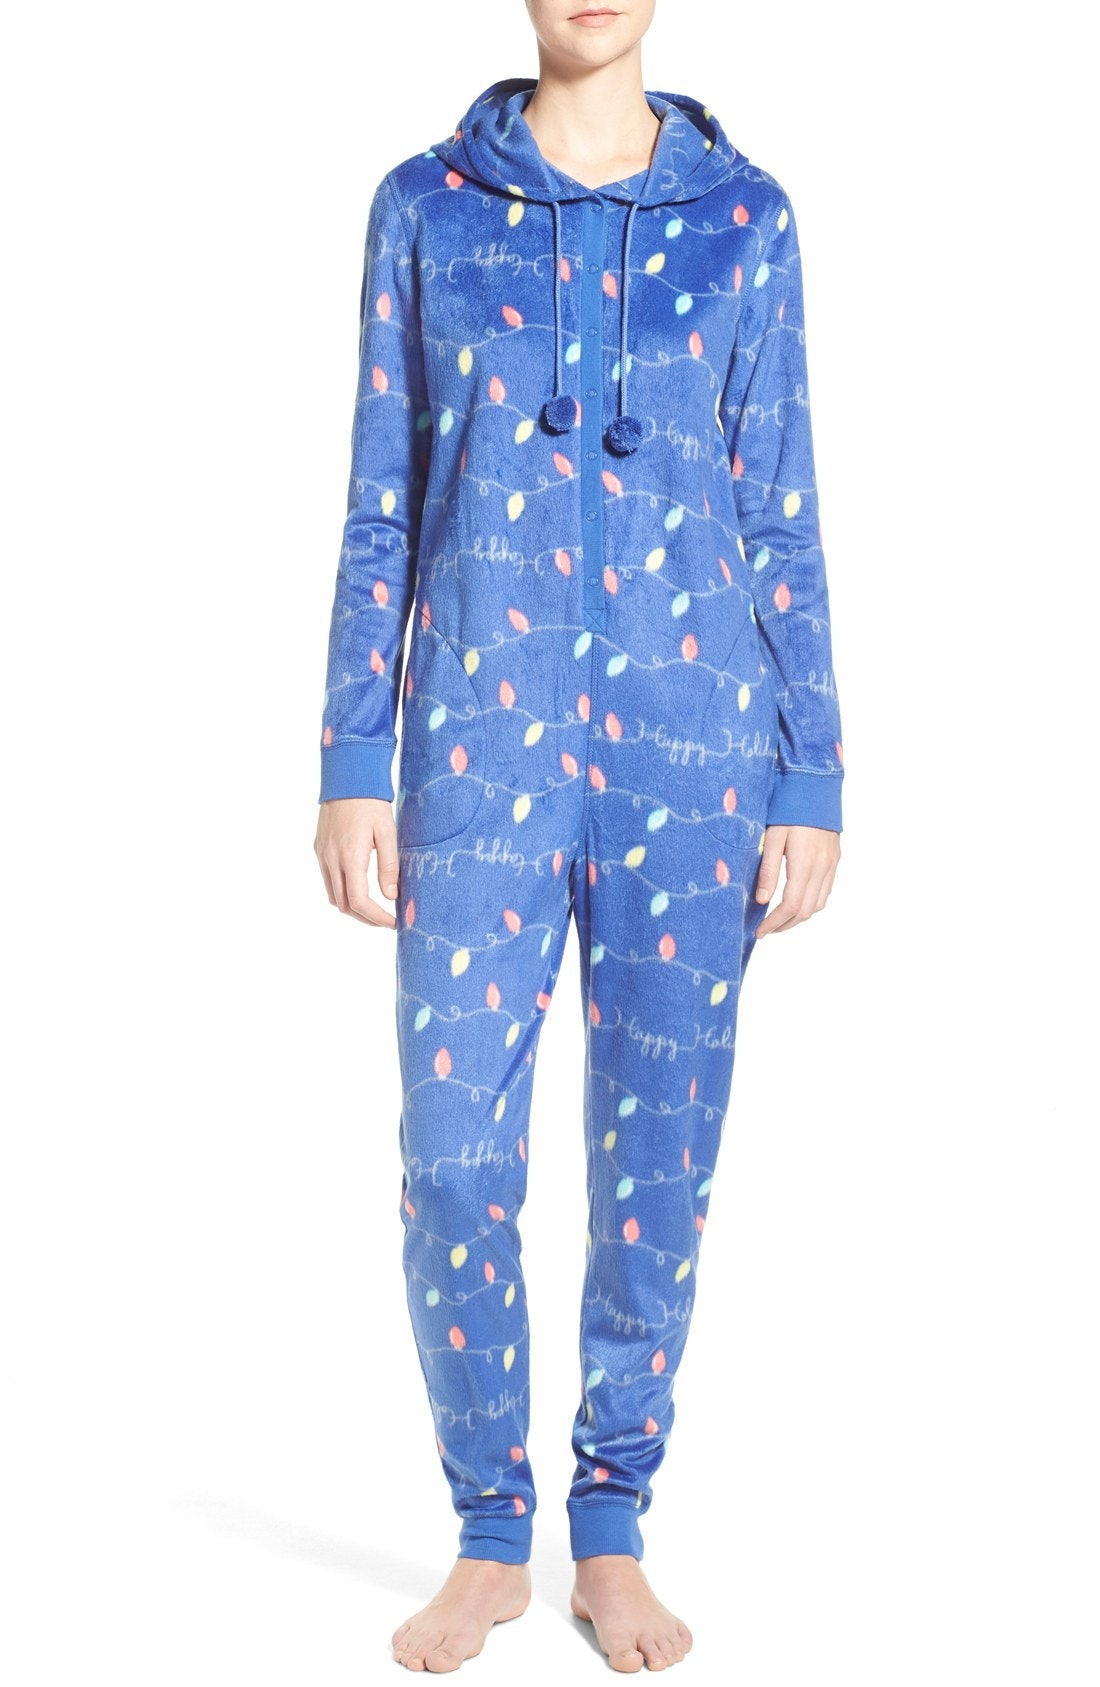 10 Cozy Onesie Pajamas To Gift Or Keep For Yourself This Holiday ...